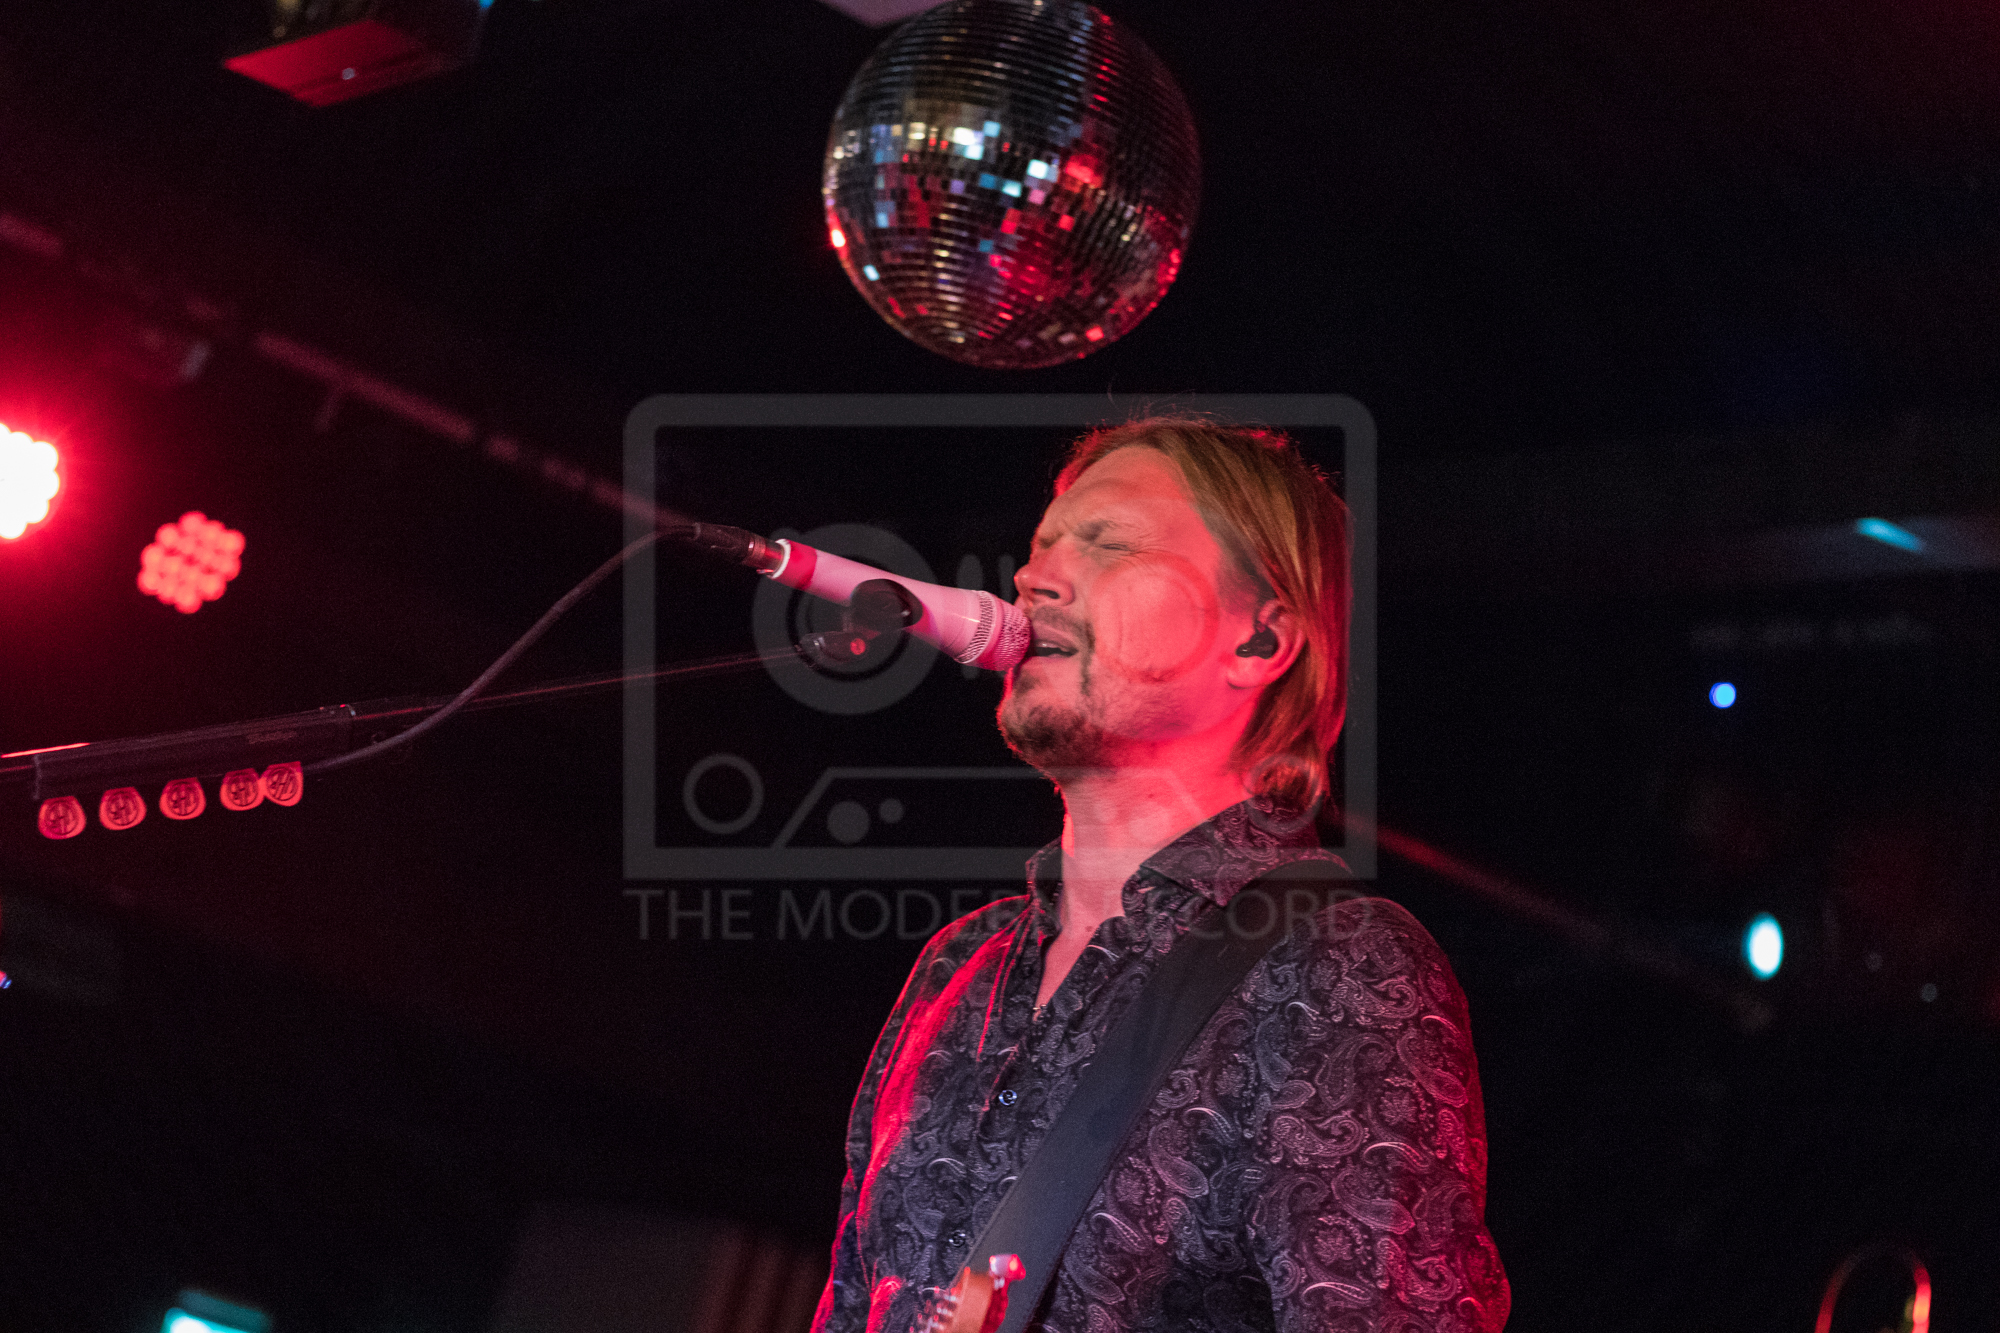 13 - von hertzen brothers - Newcastle University SU, Newcastle - 08-12-18 Picture by Will Gorman Photo.JPG